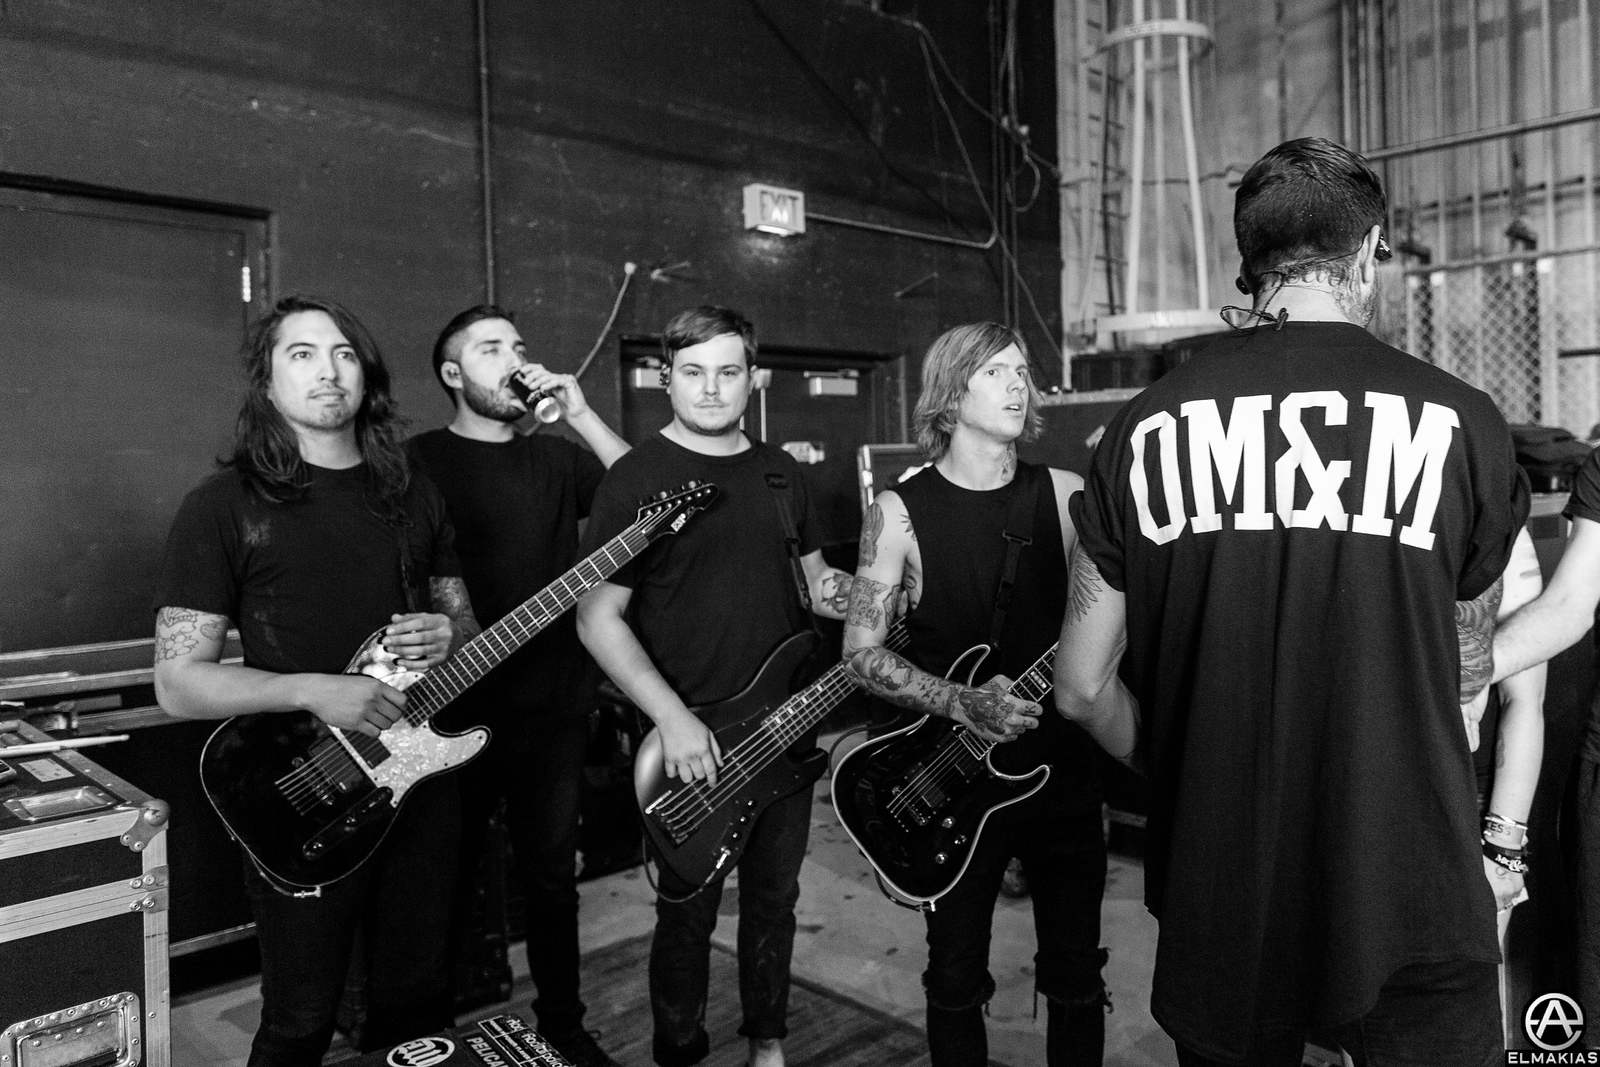 Of Mice & Men even closer to going on stage